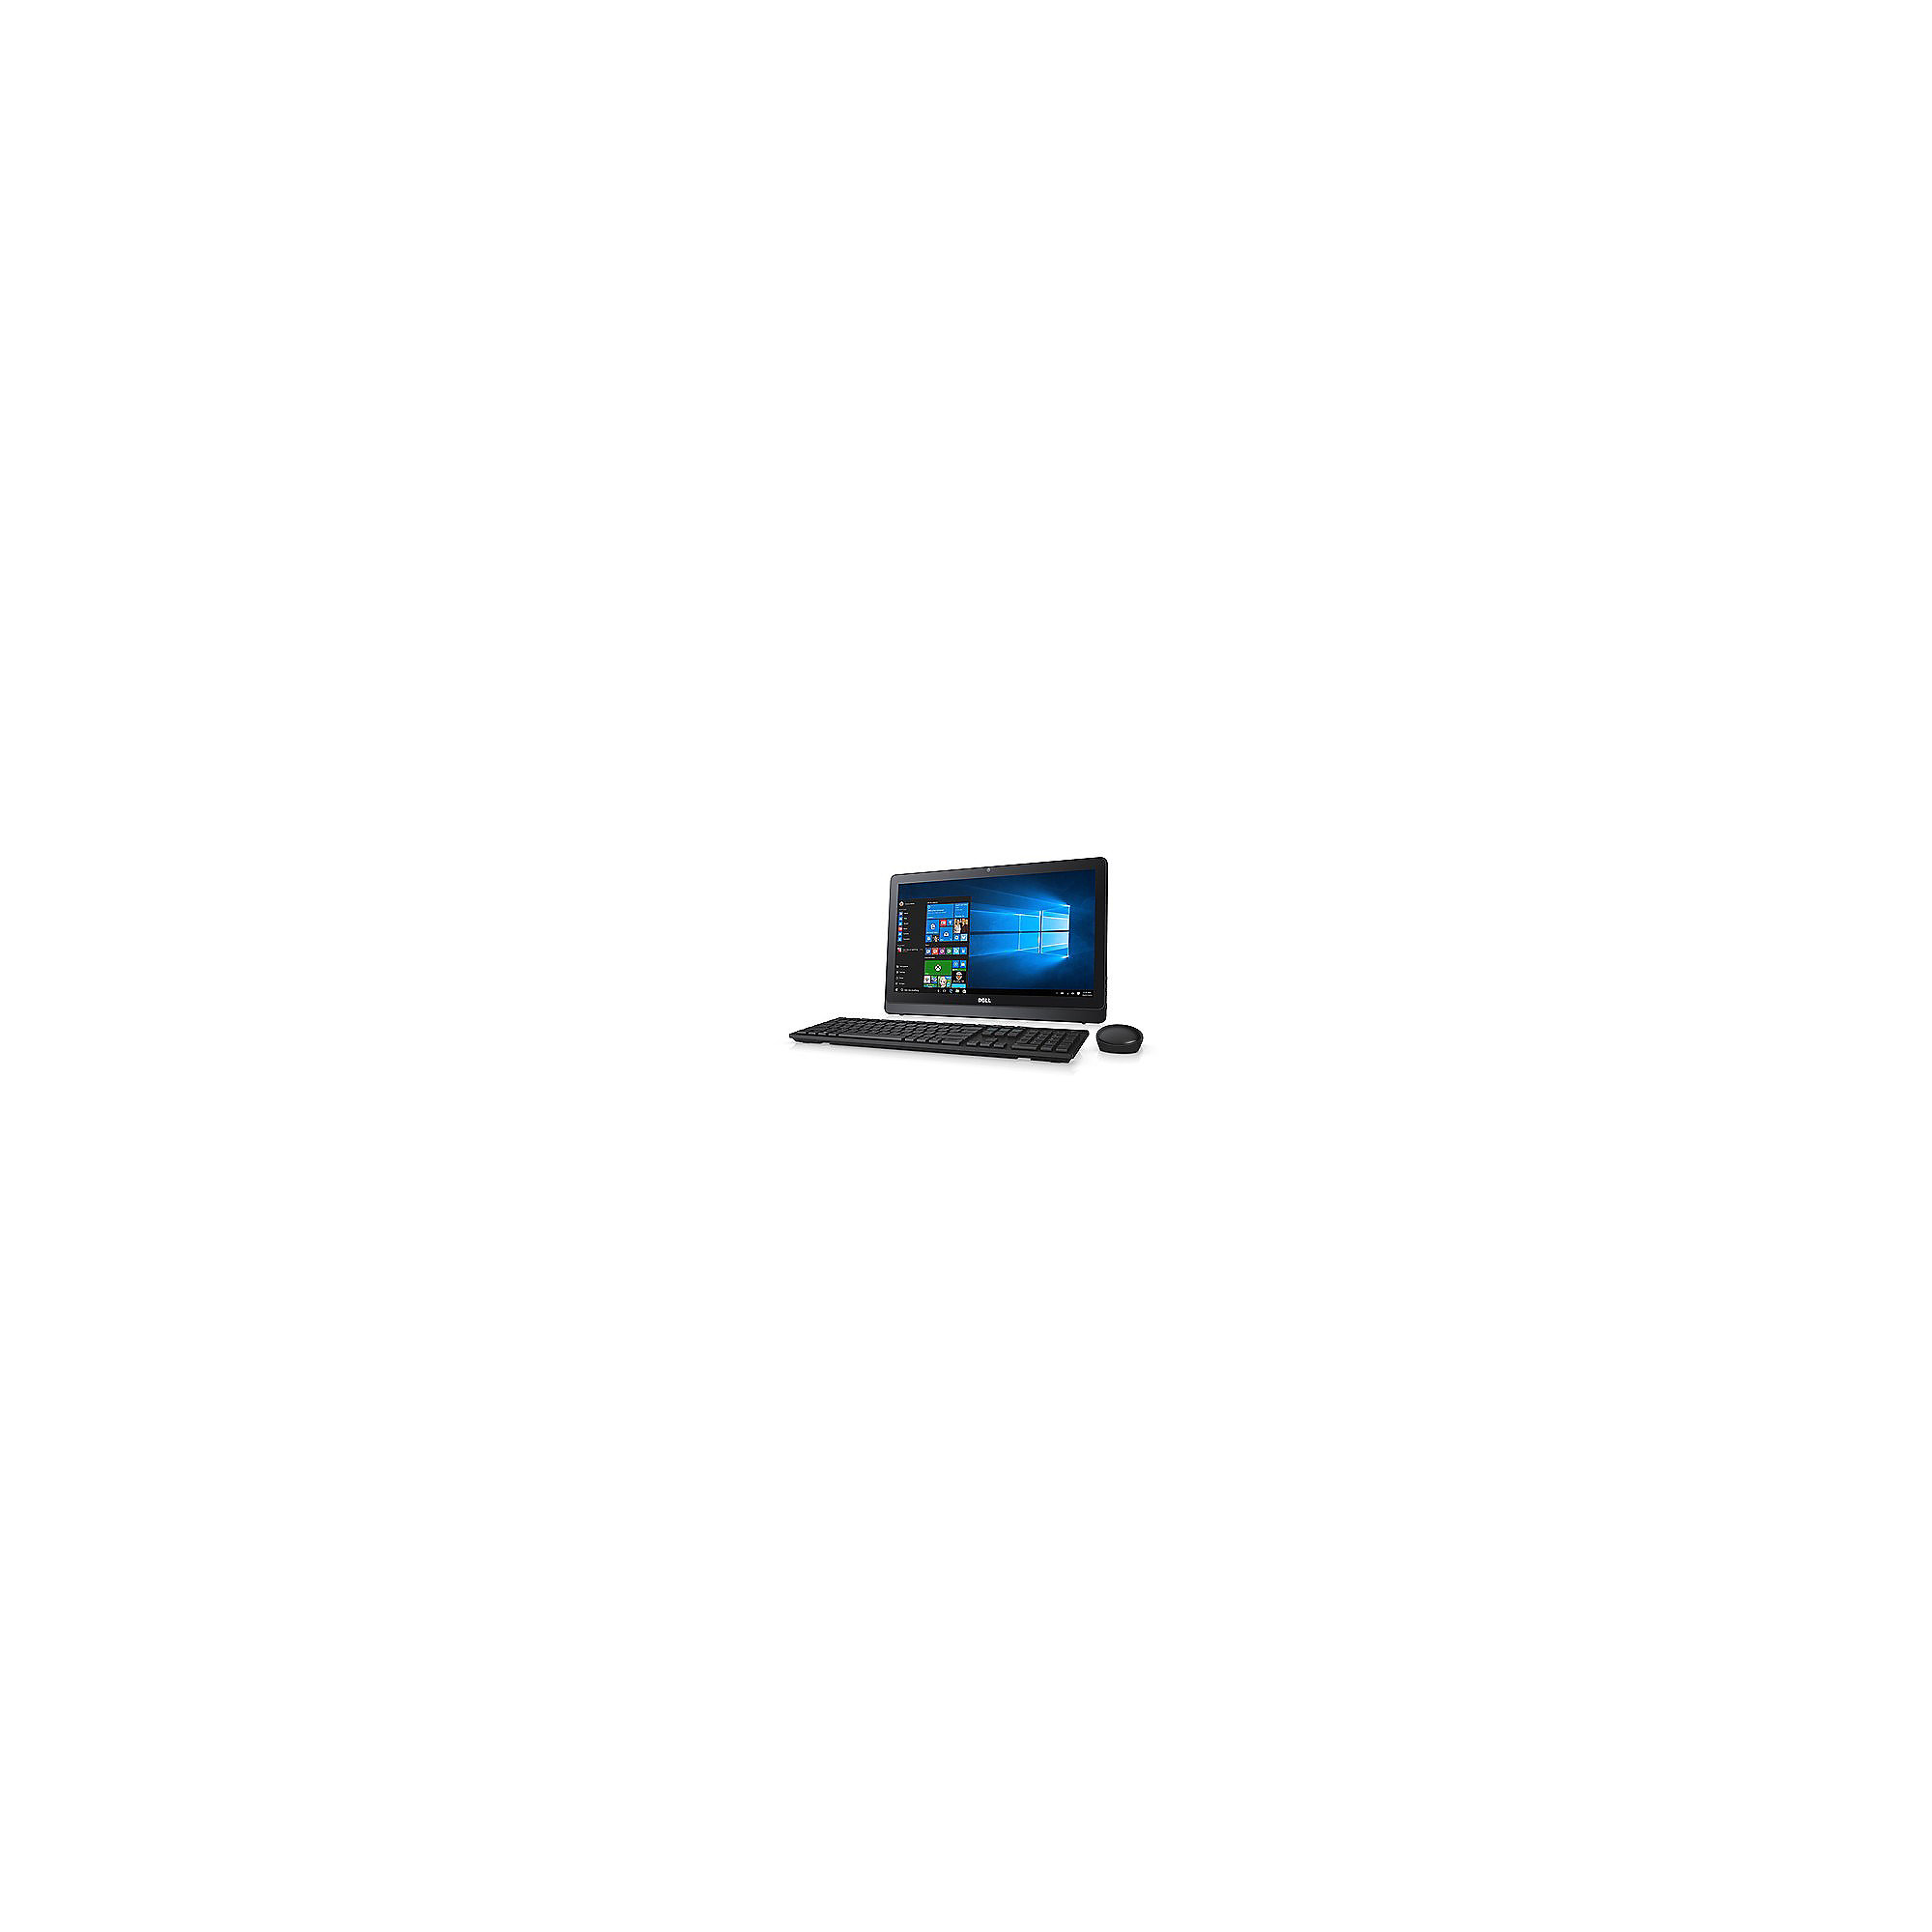 "DELL Inspiron 3264 AiO i5-7200M 8GB/1TB FHD Touch 22"" Intel HD 620 W10"